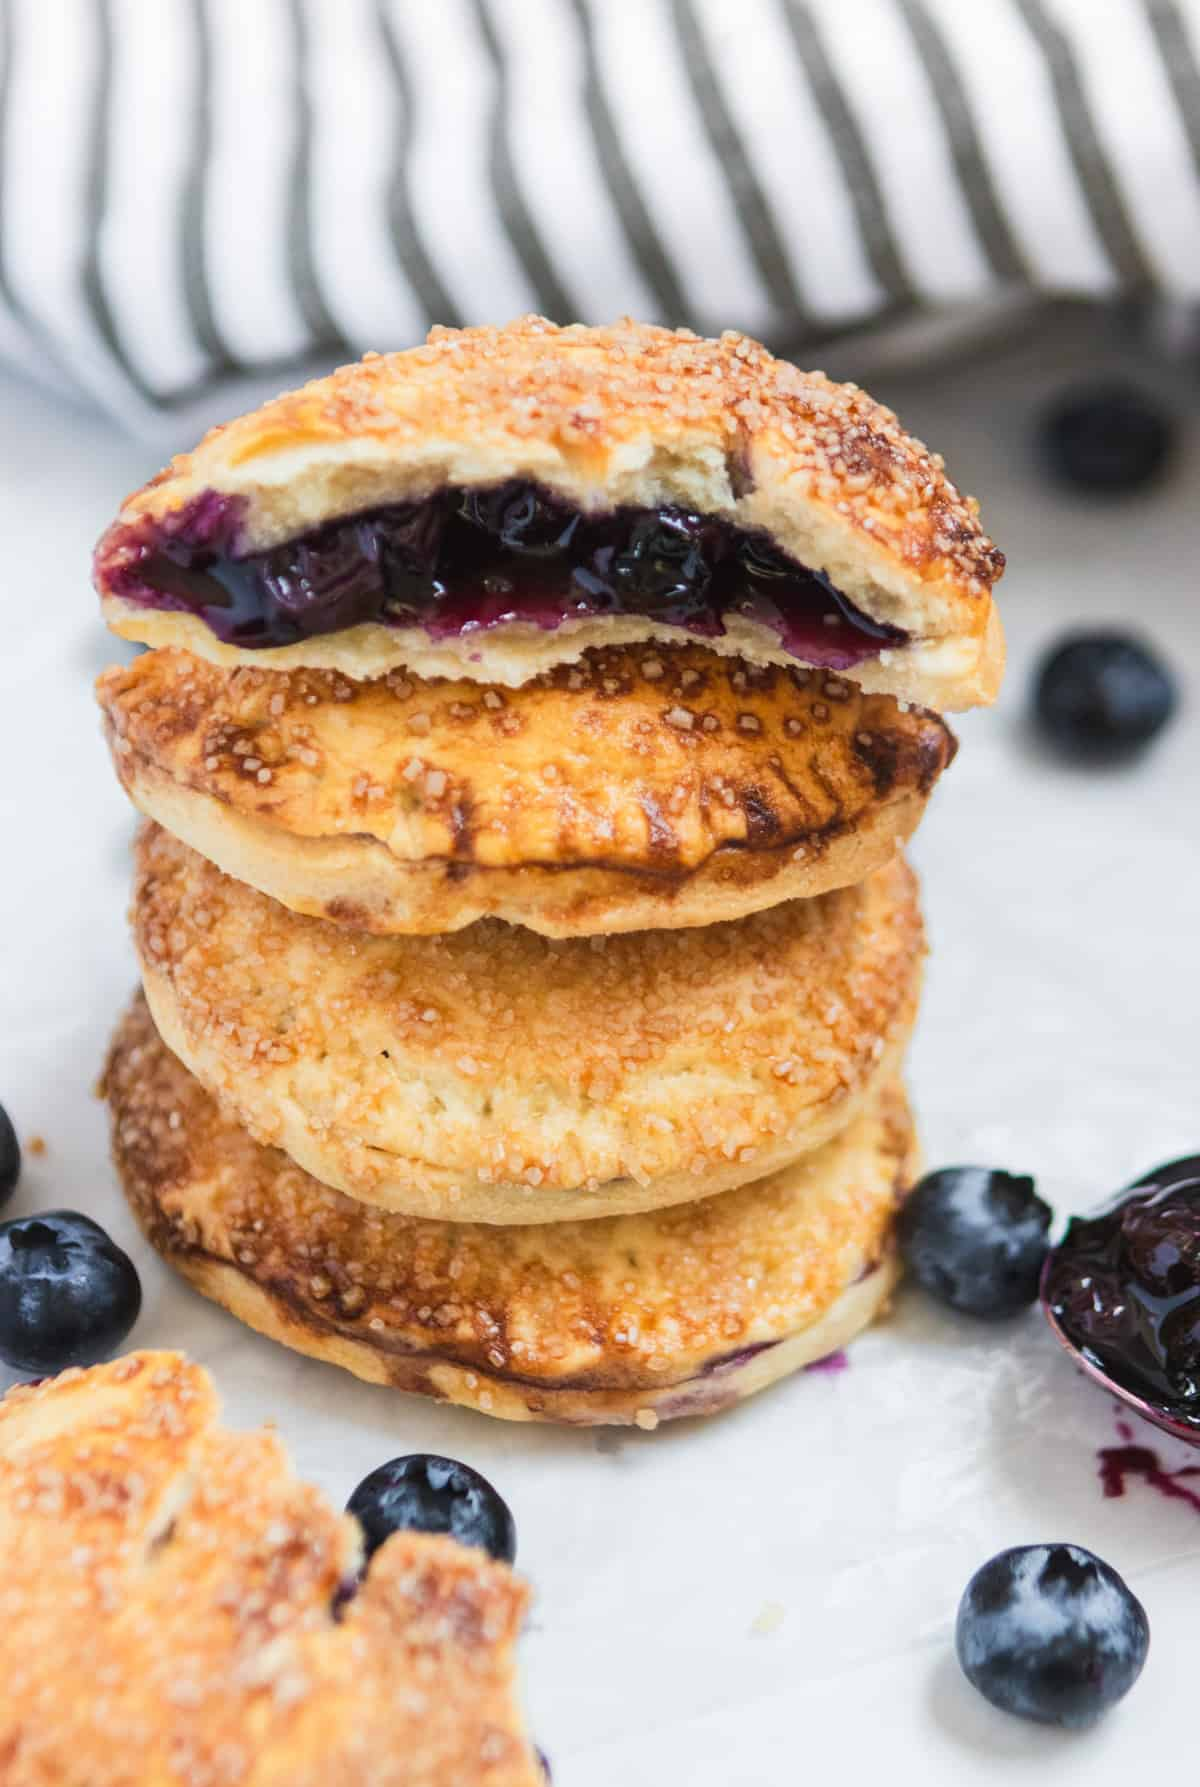 Stack of air fryer hand pies with blueberry filling in top cut pie.